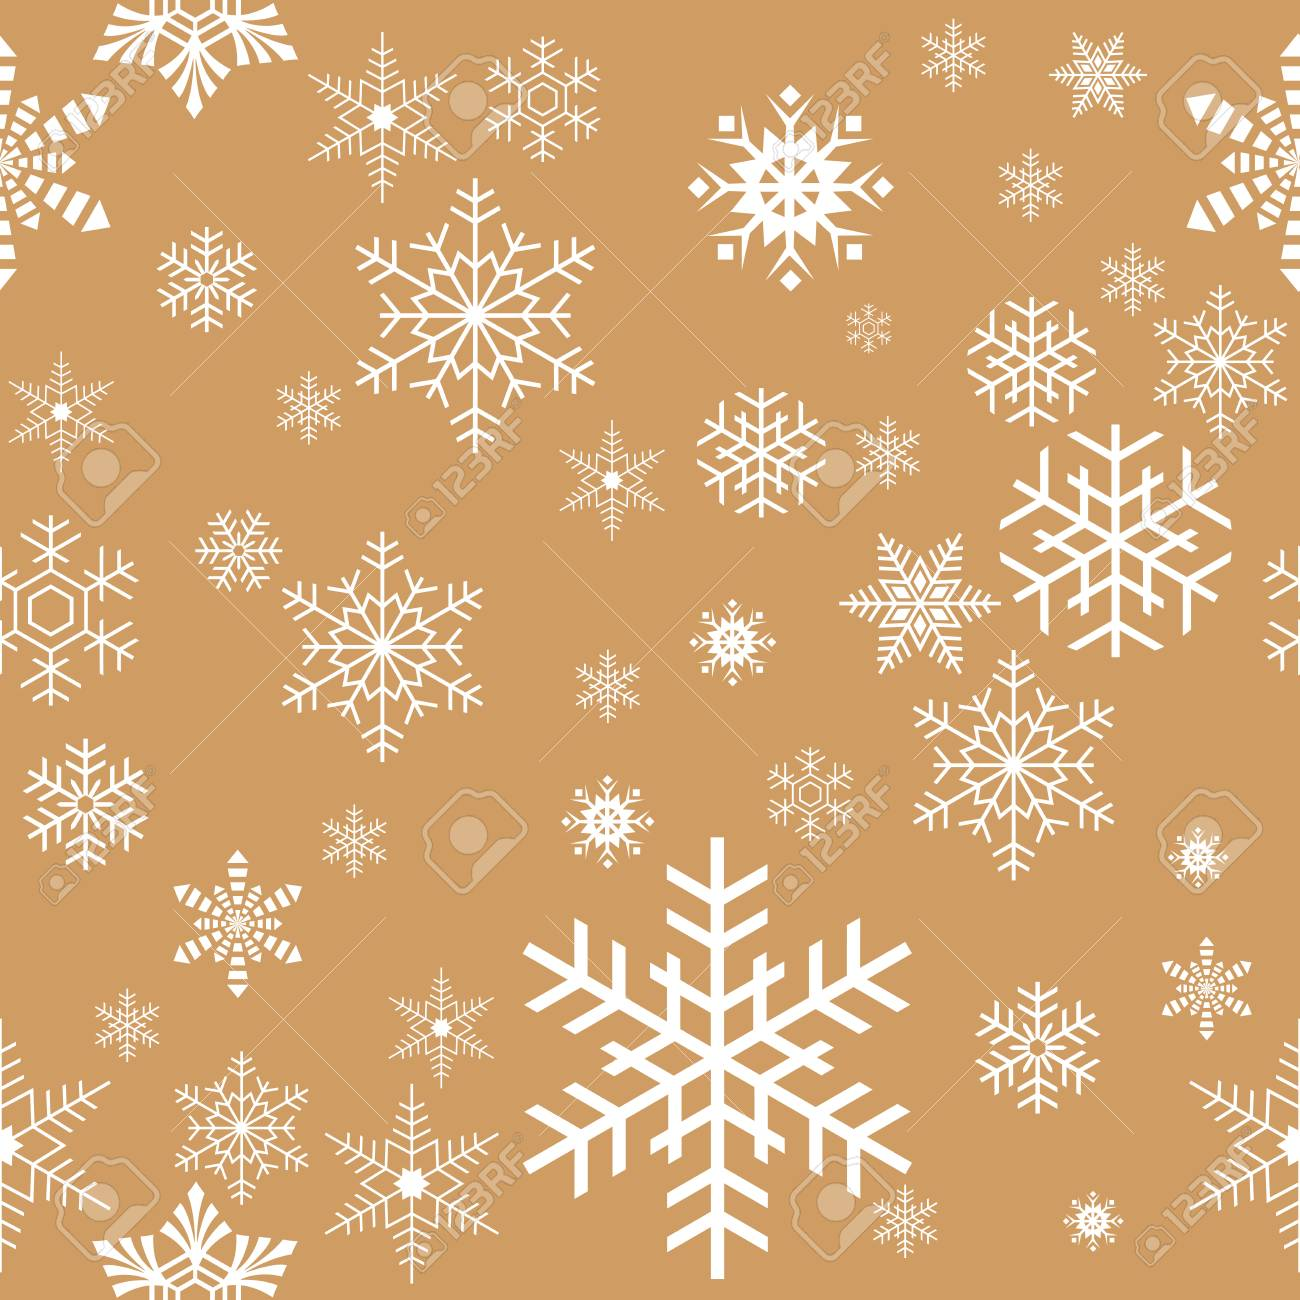 Seamless Christmas Gift Wrapping Paper Pattern Texture Wallpaper Royalty Free Cliparts Vectors And Stock Illustration Image 110753358